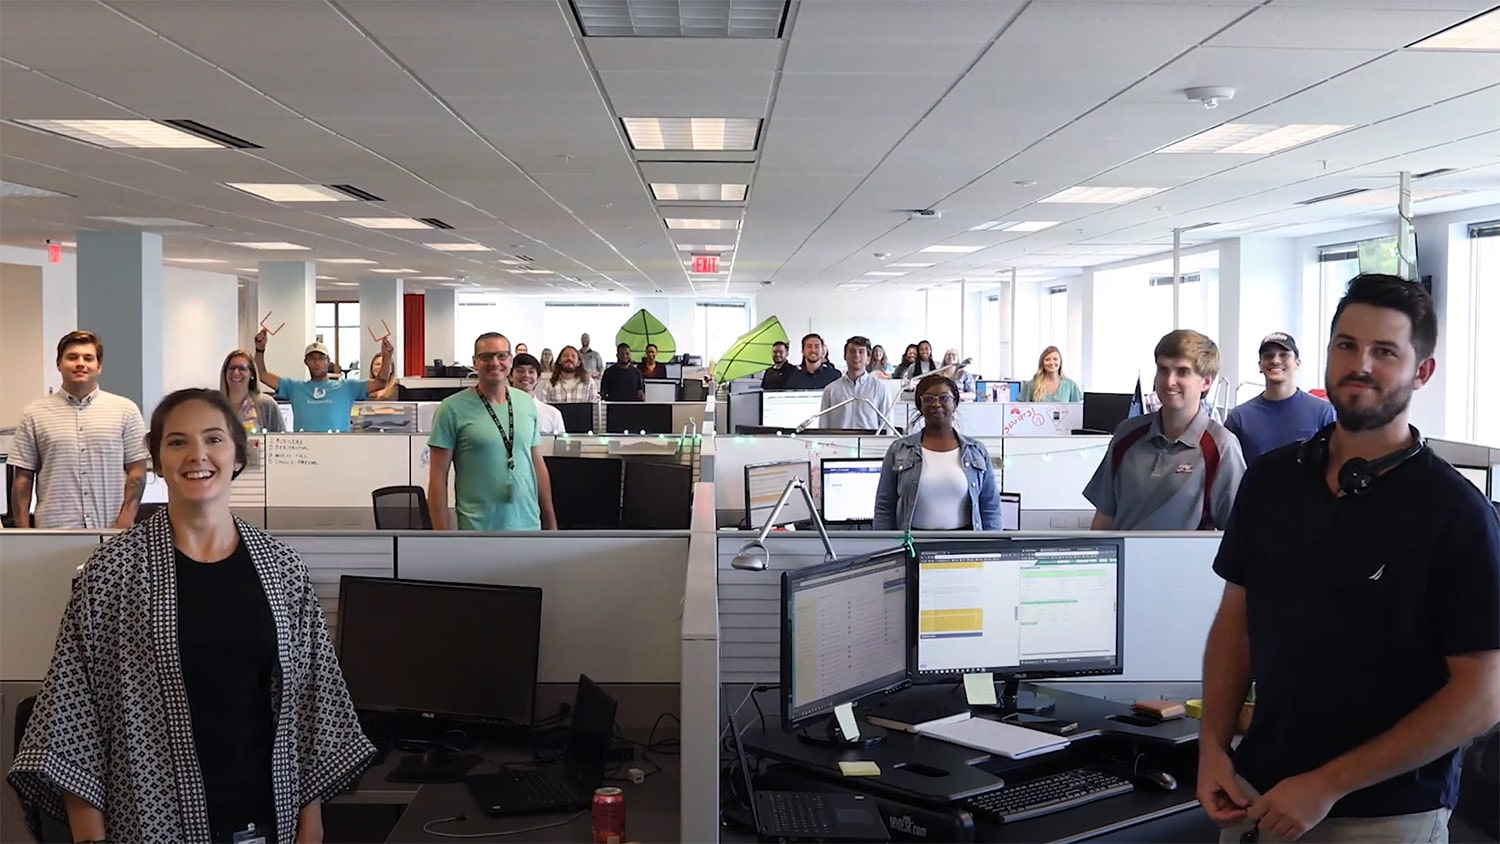 A group portrait of Bandwidth employees standing in their cubicles.